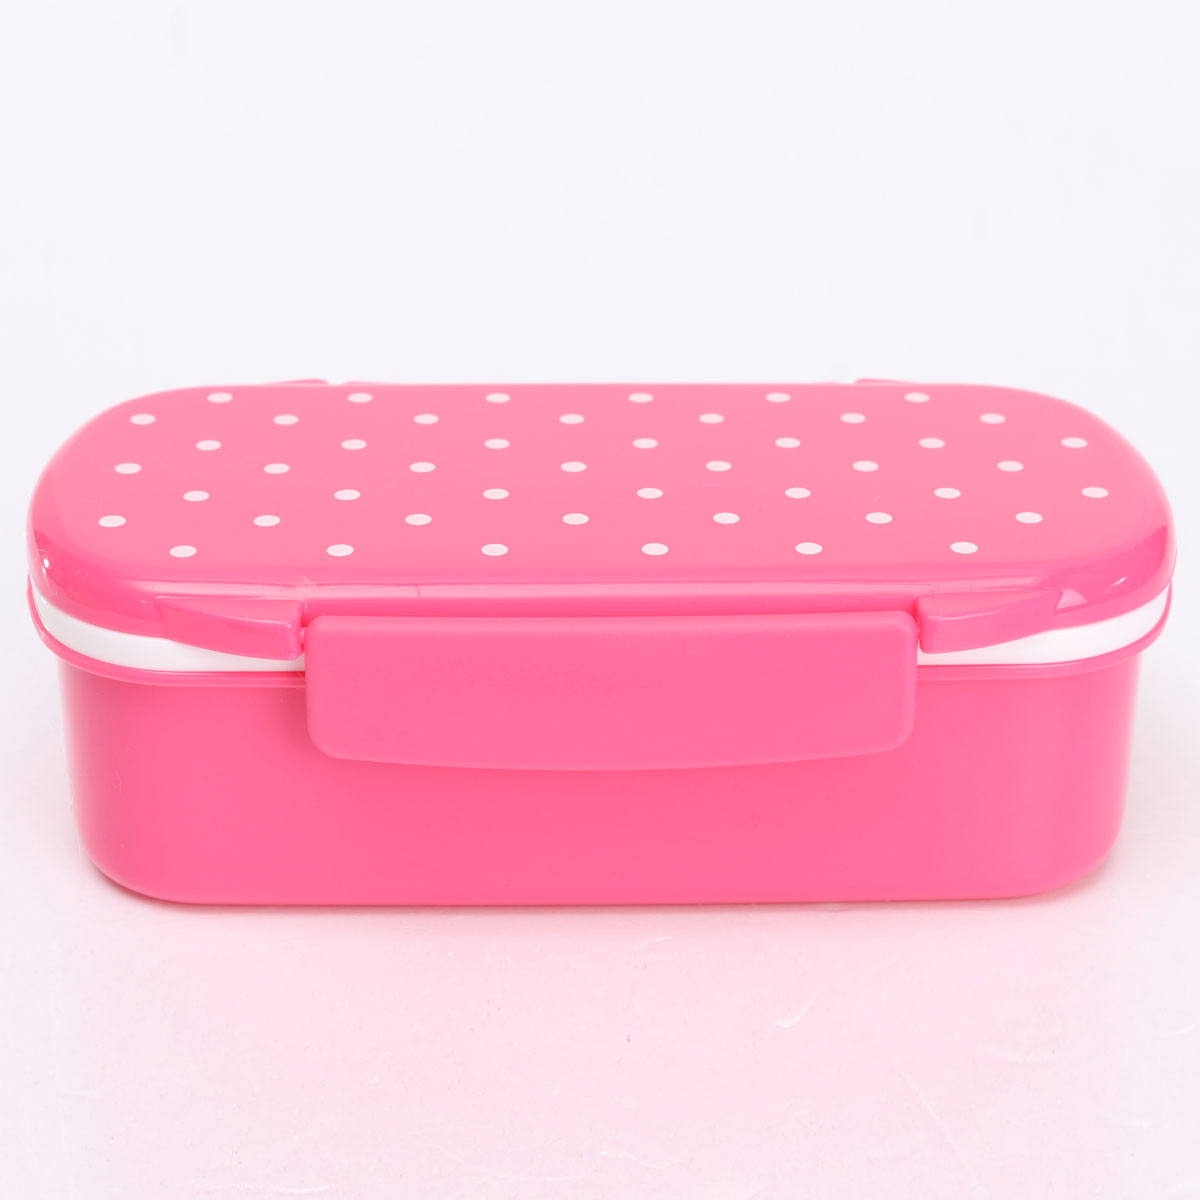 Cute Plastic Lunch Box Food Container Storage Box Portable Bento Box Spoon Fork